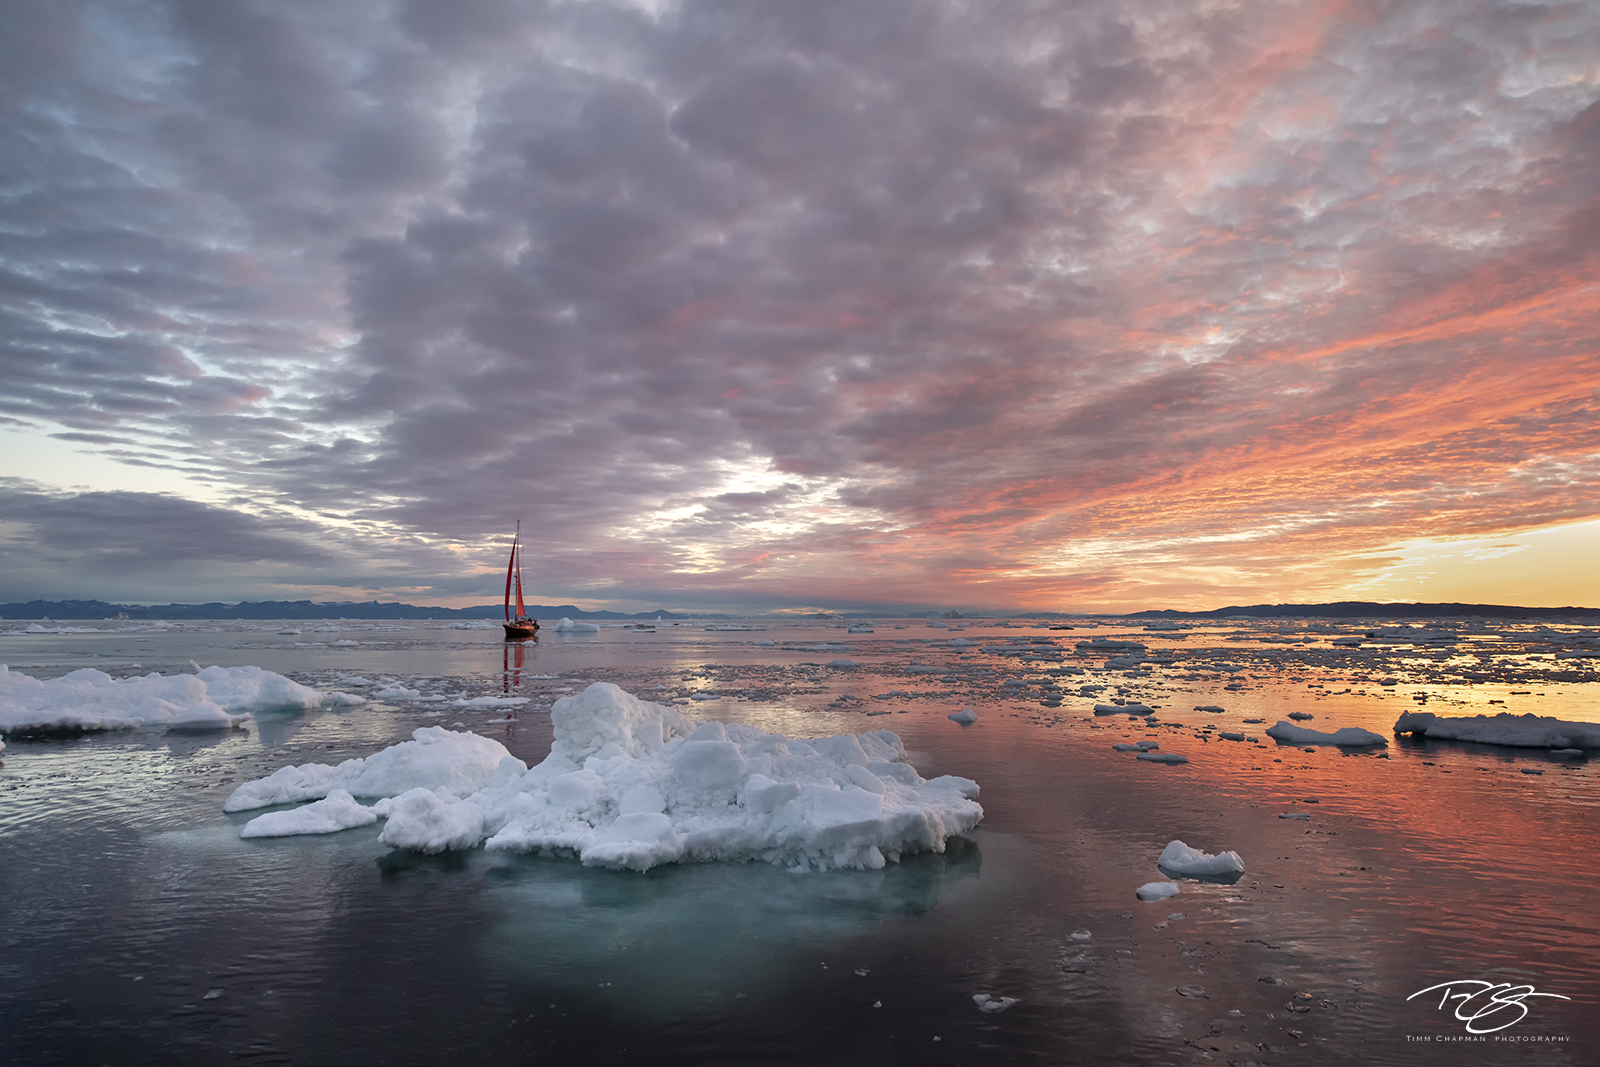 ice; iceberg; disko bay; dusk; twilight; predawn; sunrise; icefjord; ship; sailboat; sailing; schooner; sails; red sails;  scarlet sails